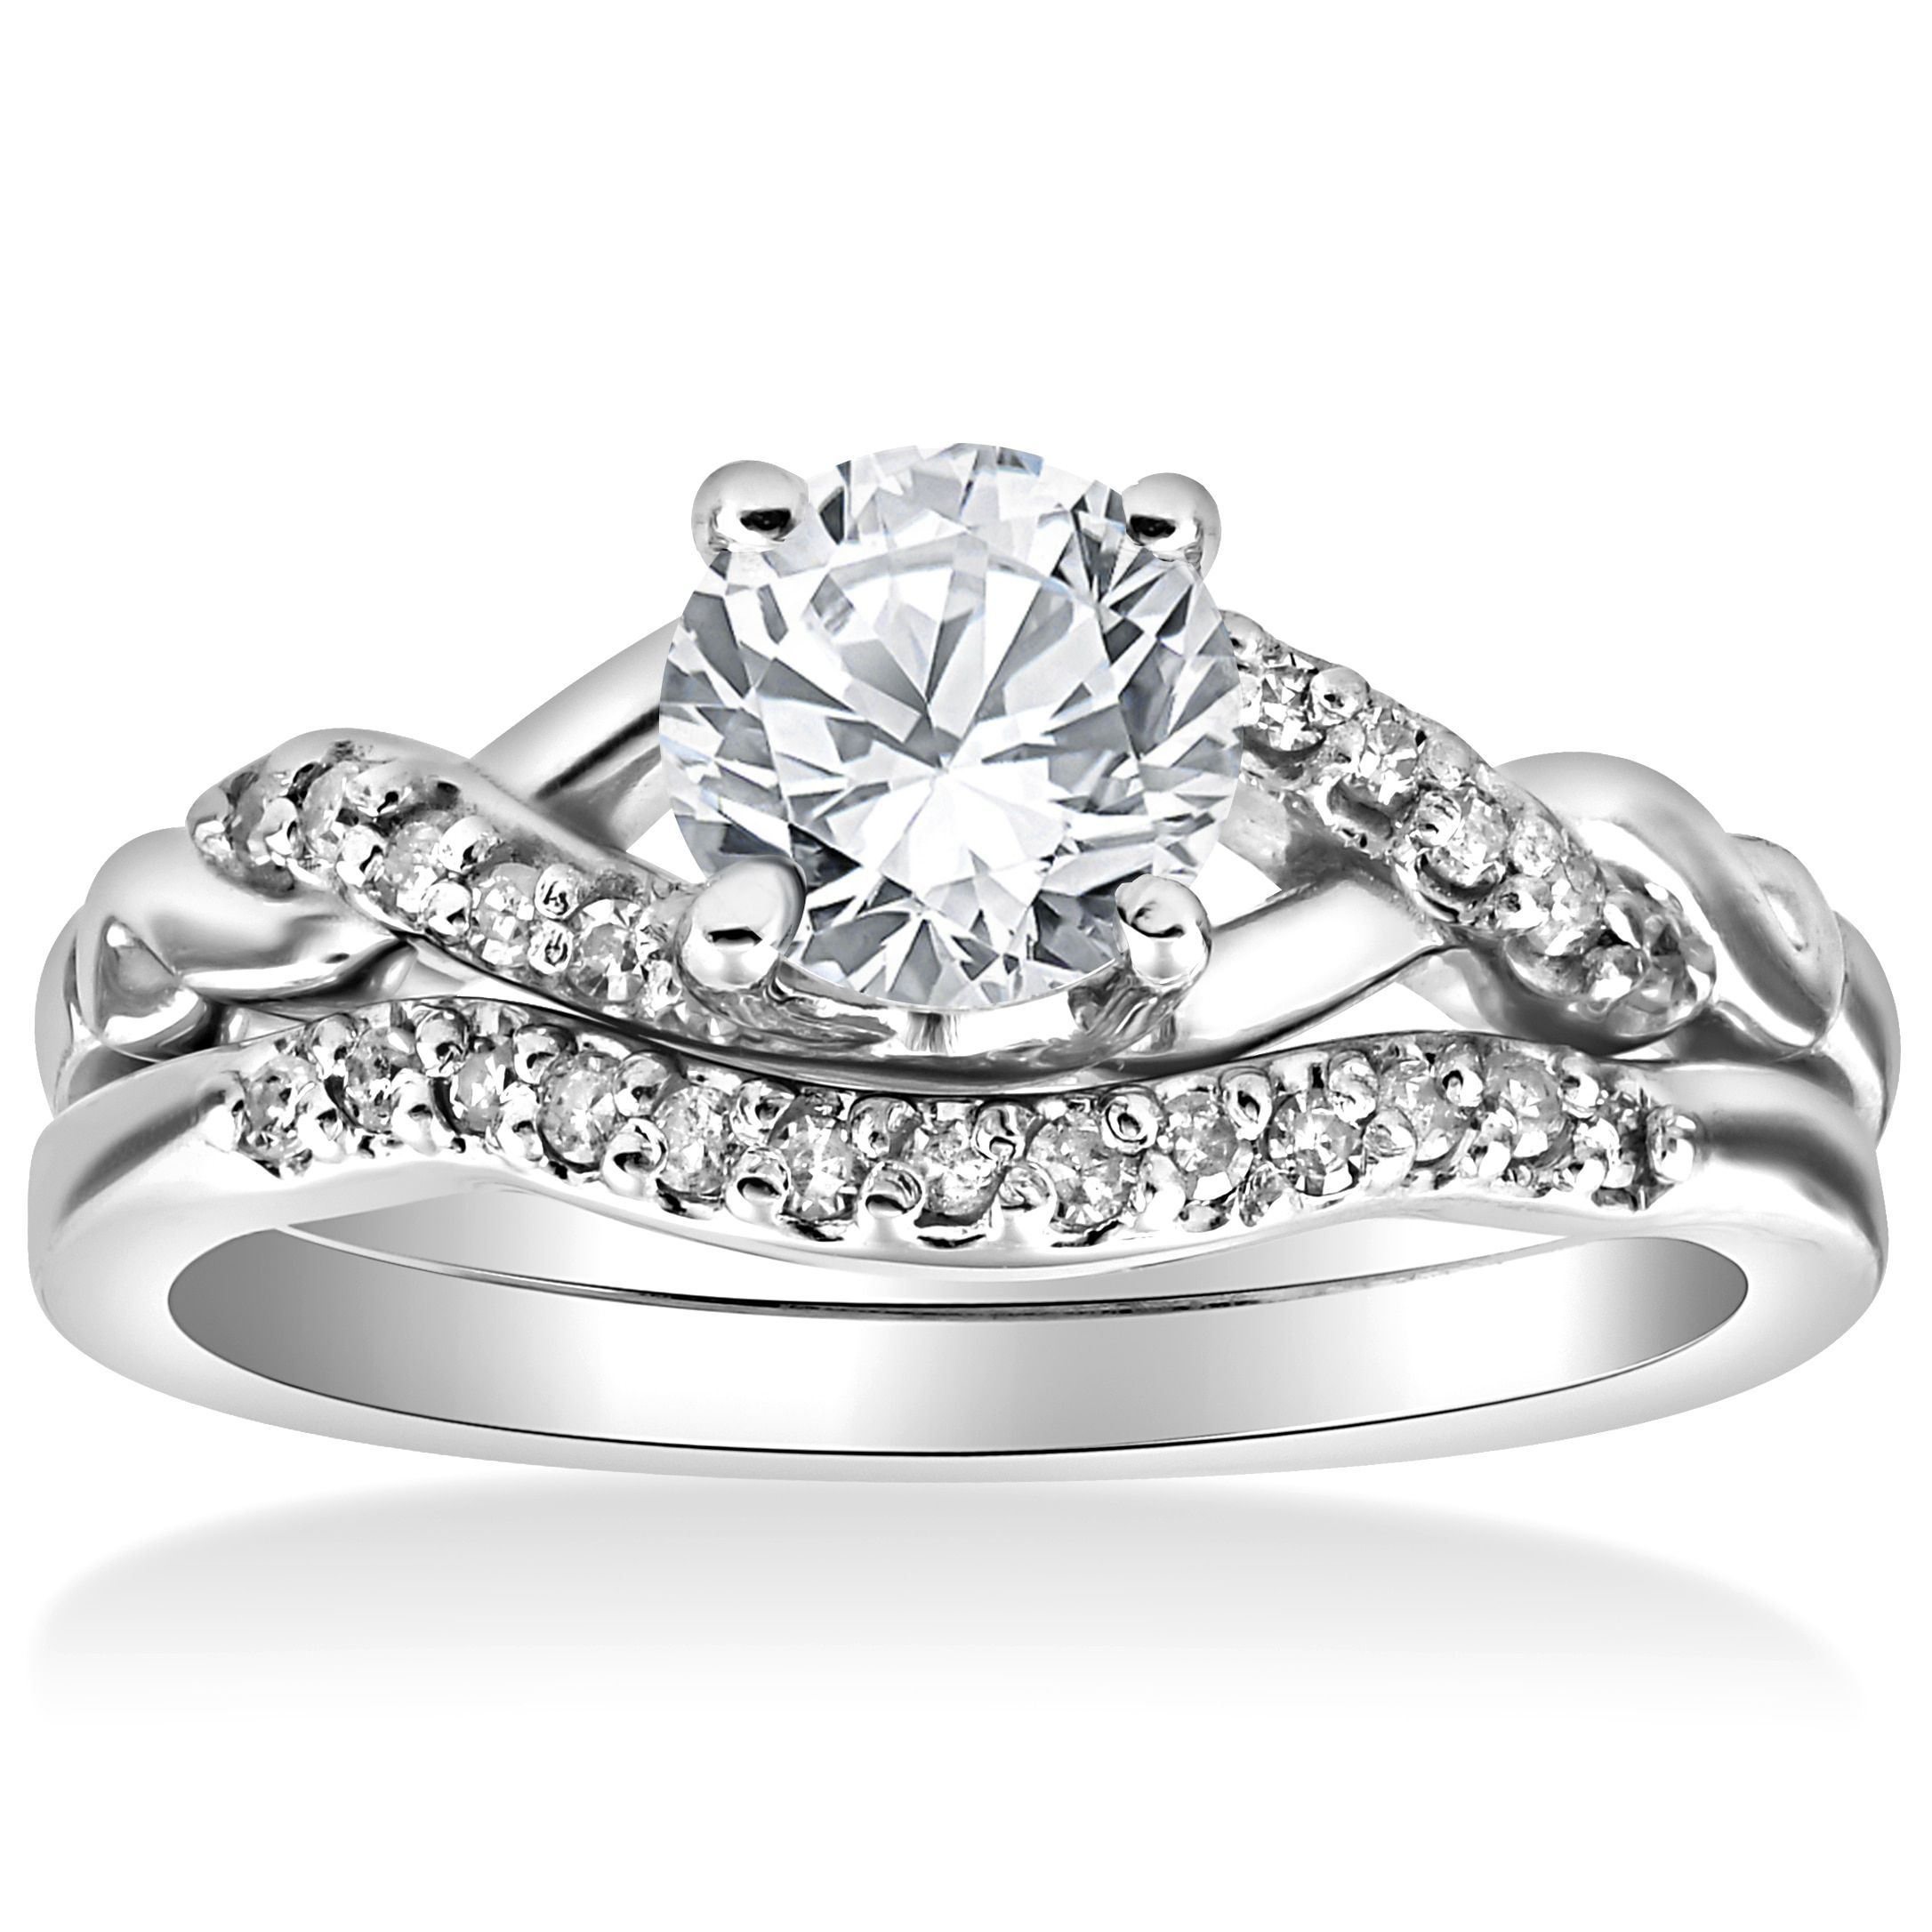 14K White Gold 5/8 cttw Diamond Engagement Matching